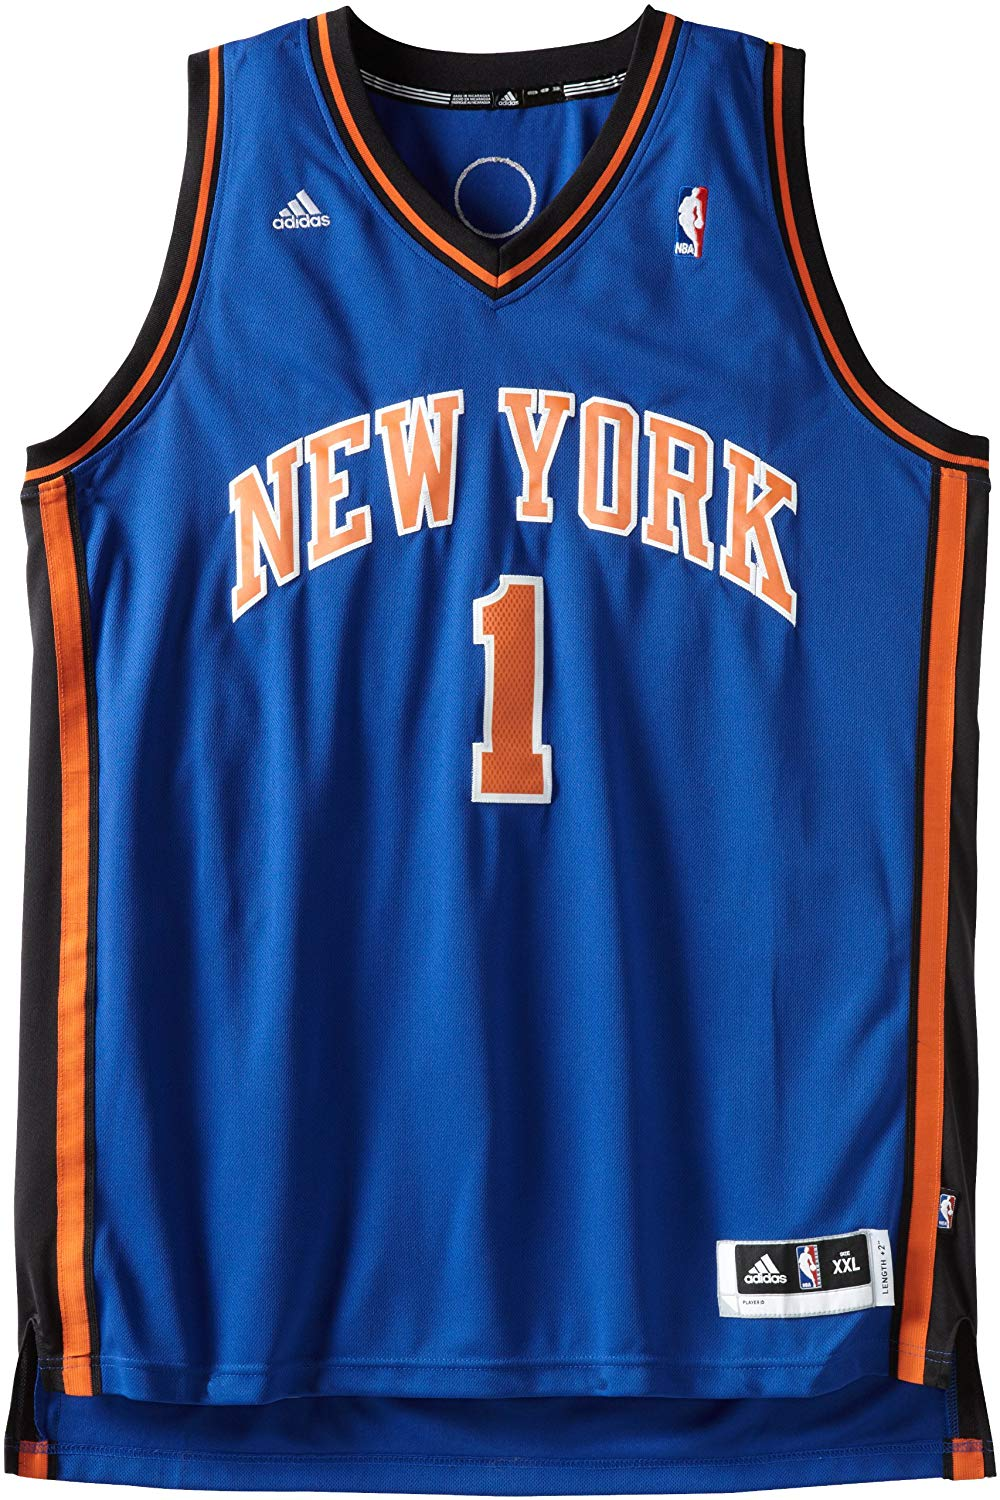 36741fd3014 adidas Men's New York Knicks Stoudemire Jersey - Large - Trade Sports